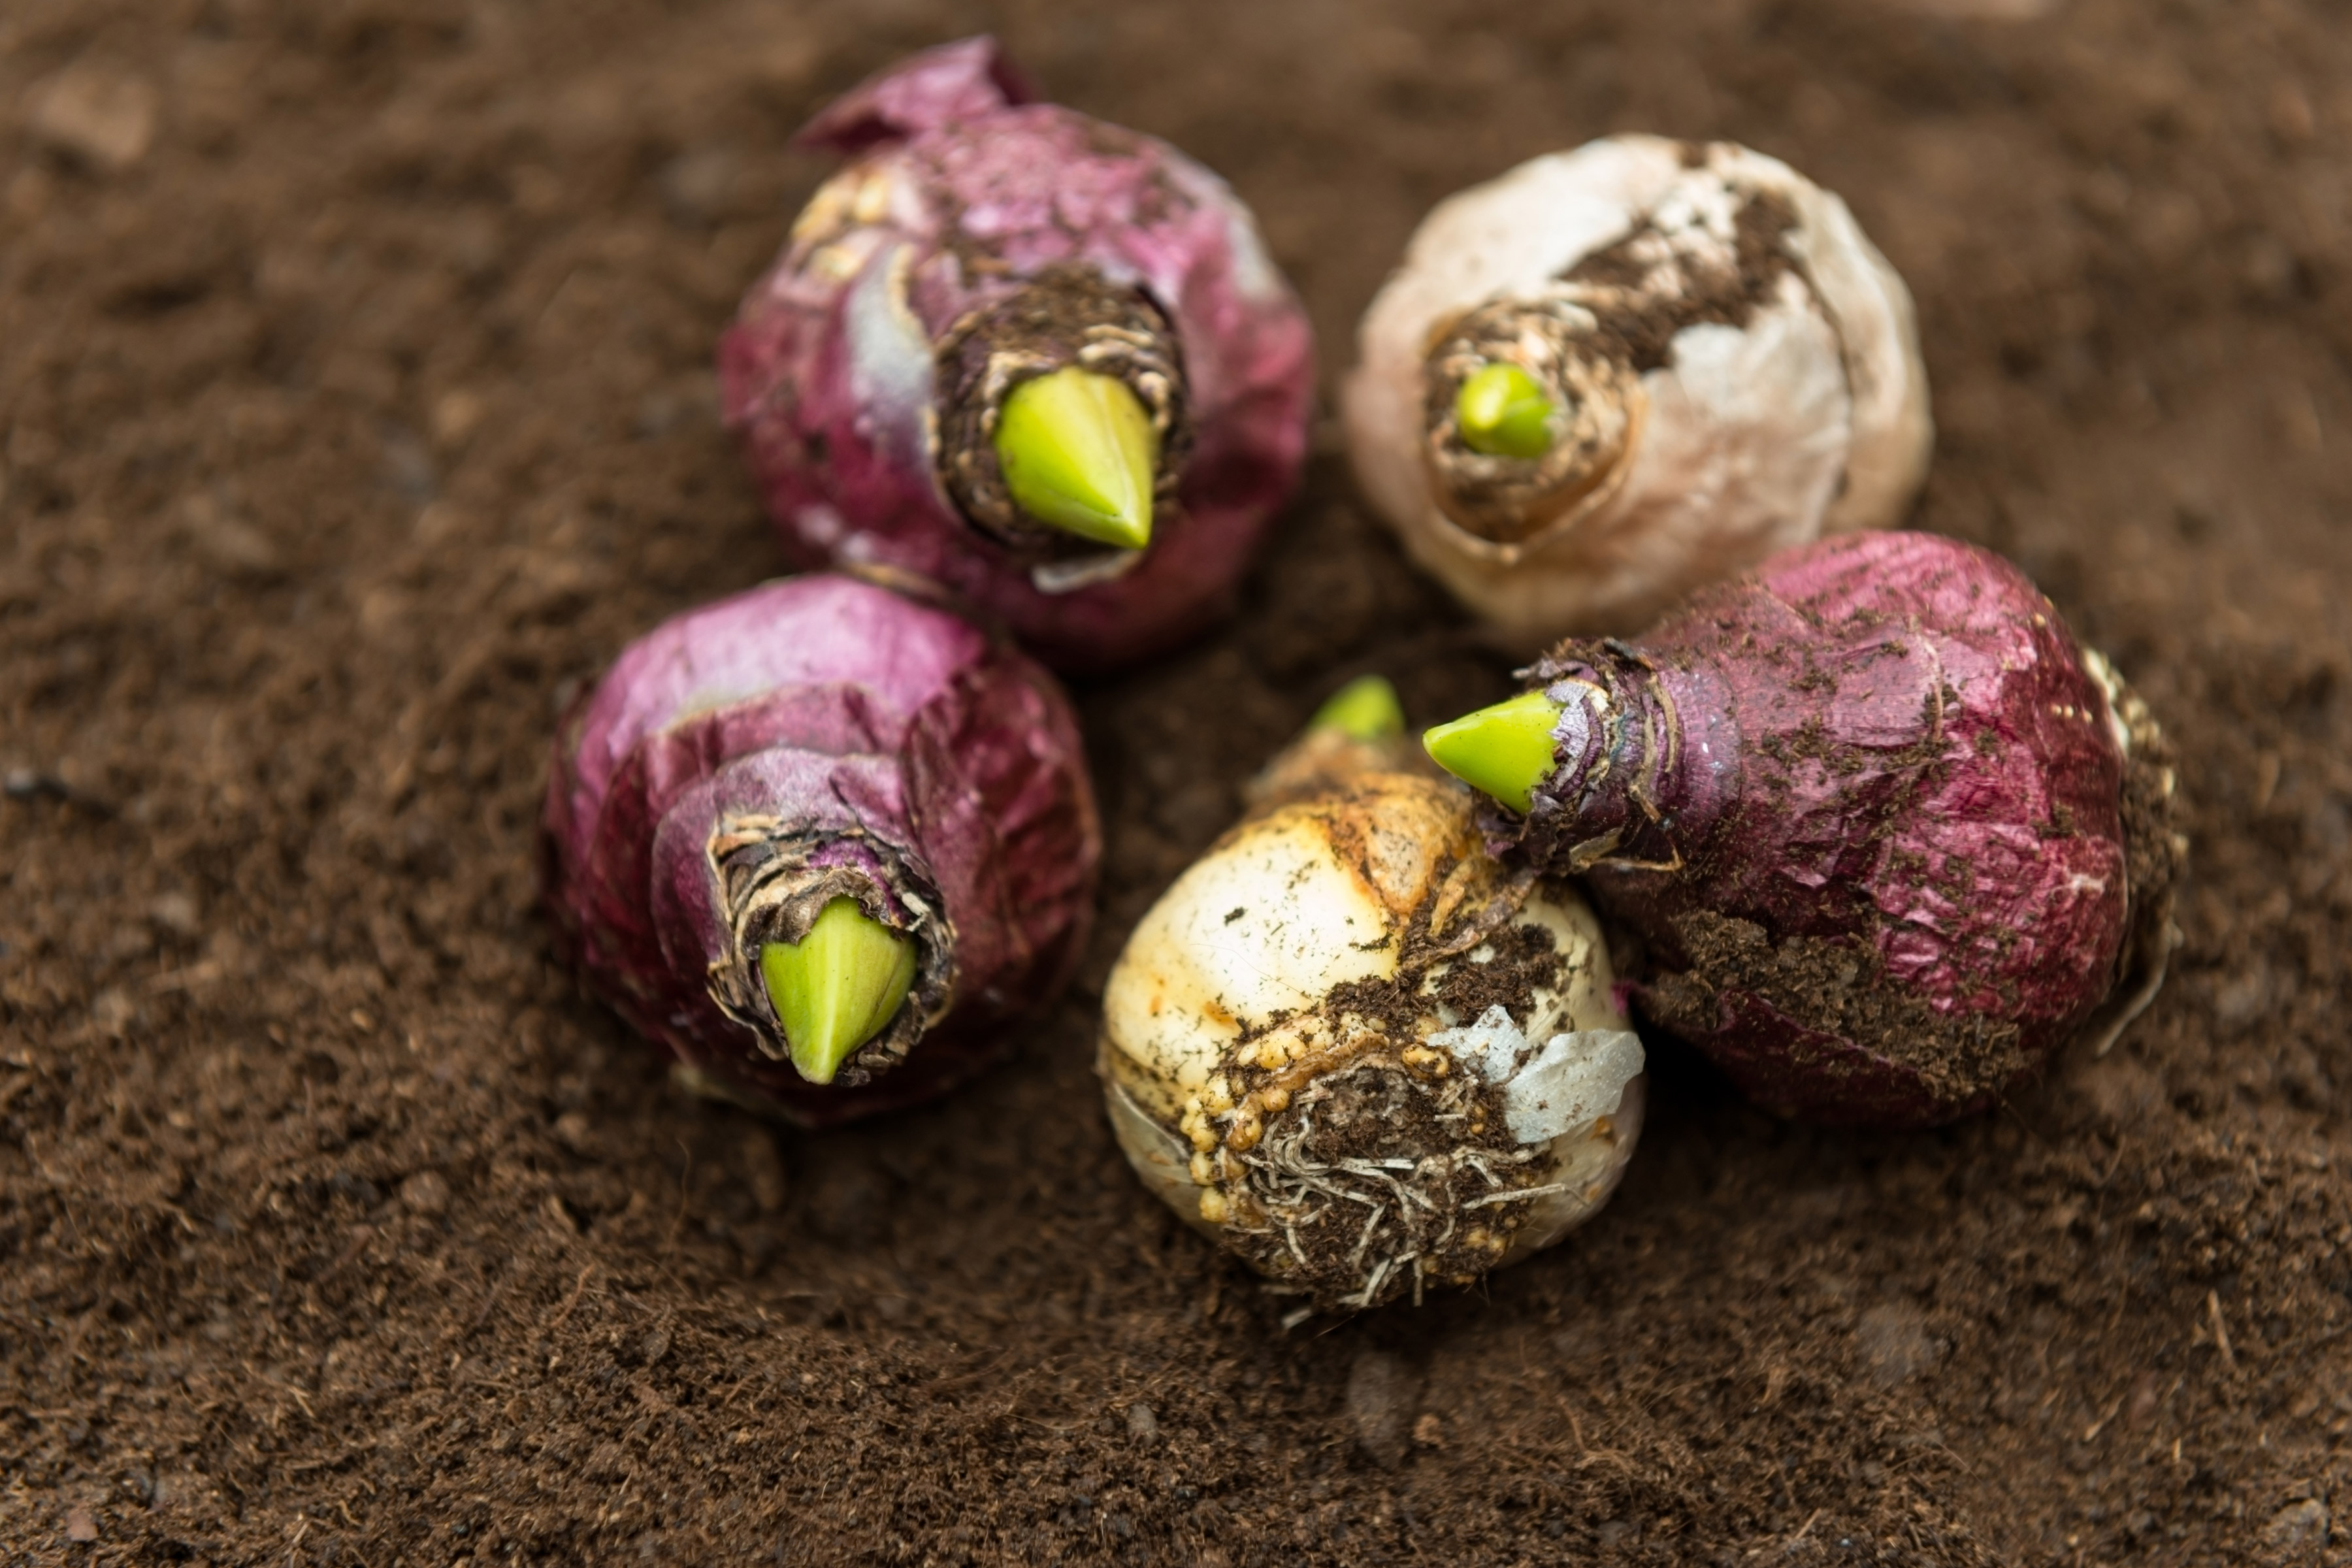 Five plant bulbs with a green root sitting in dirt.